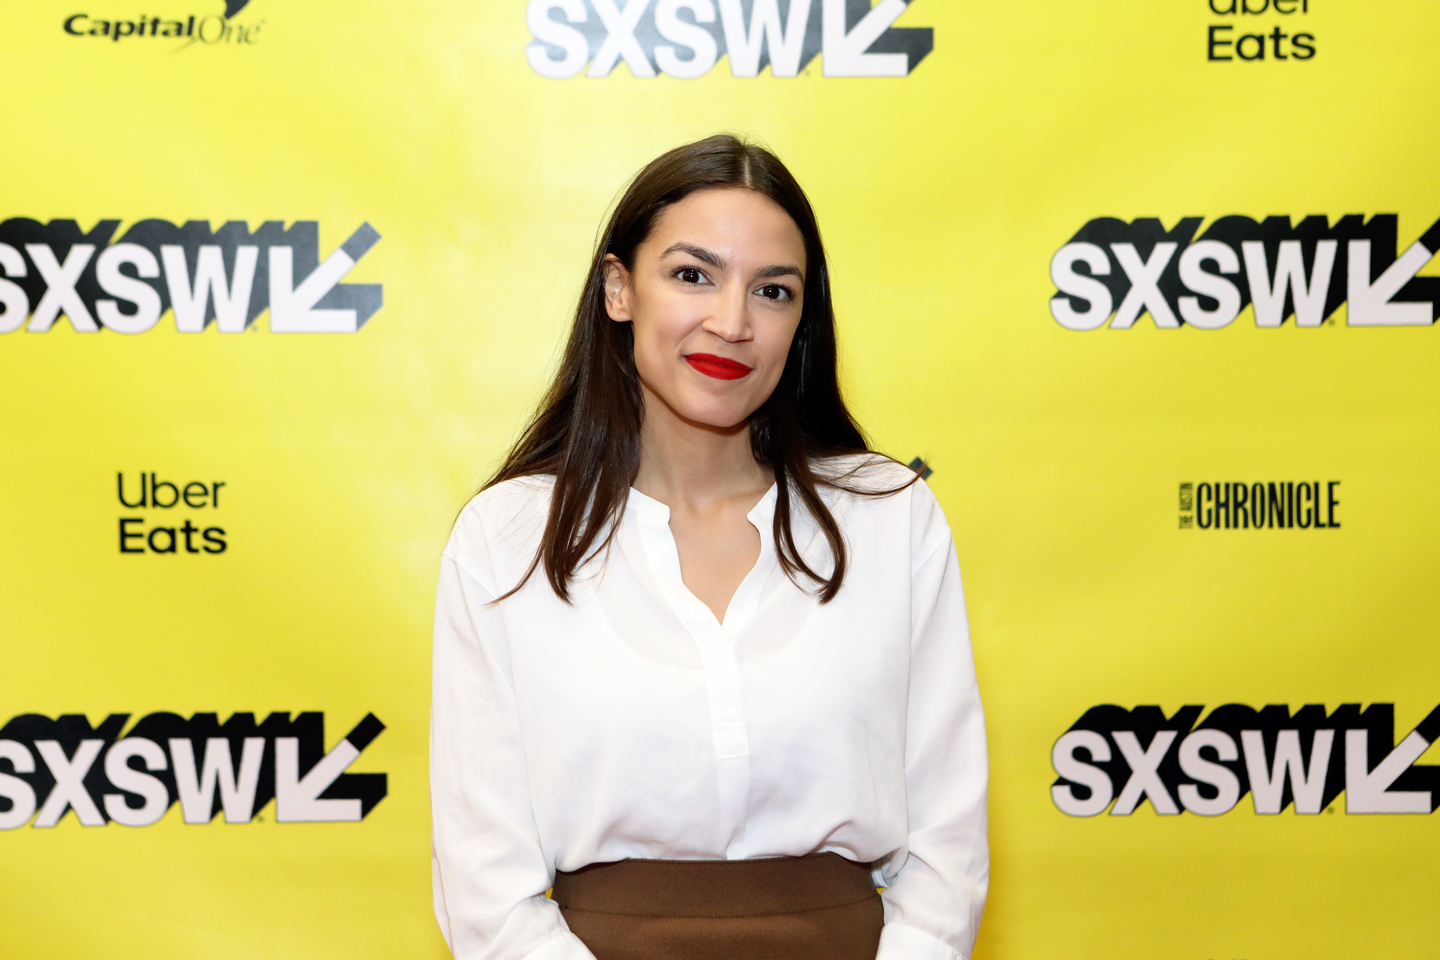 Featured Session Alexandria Ocasio-Cortez and the New Left - Photo by Samantha Burkardt/Getty Images for SXSW